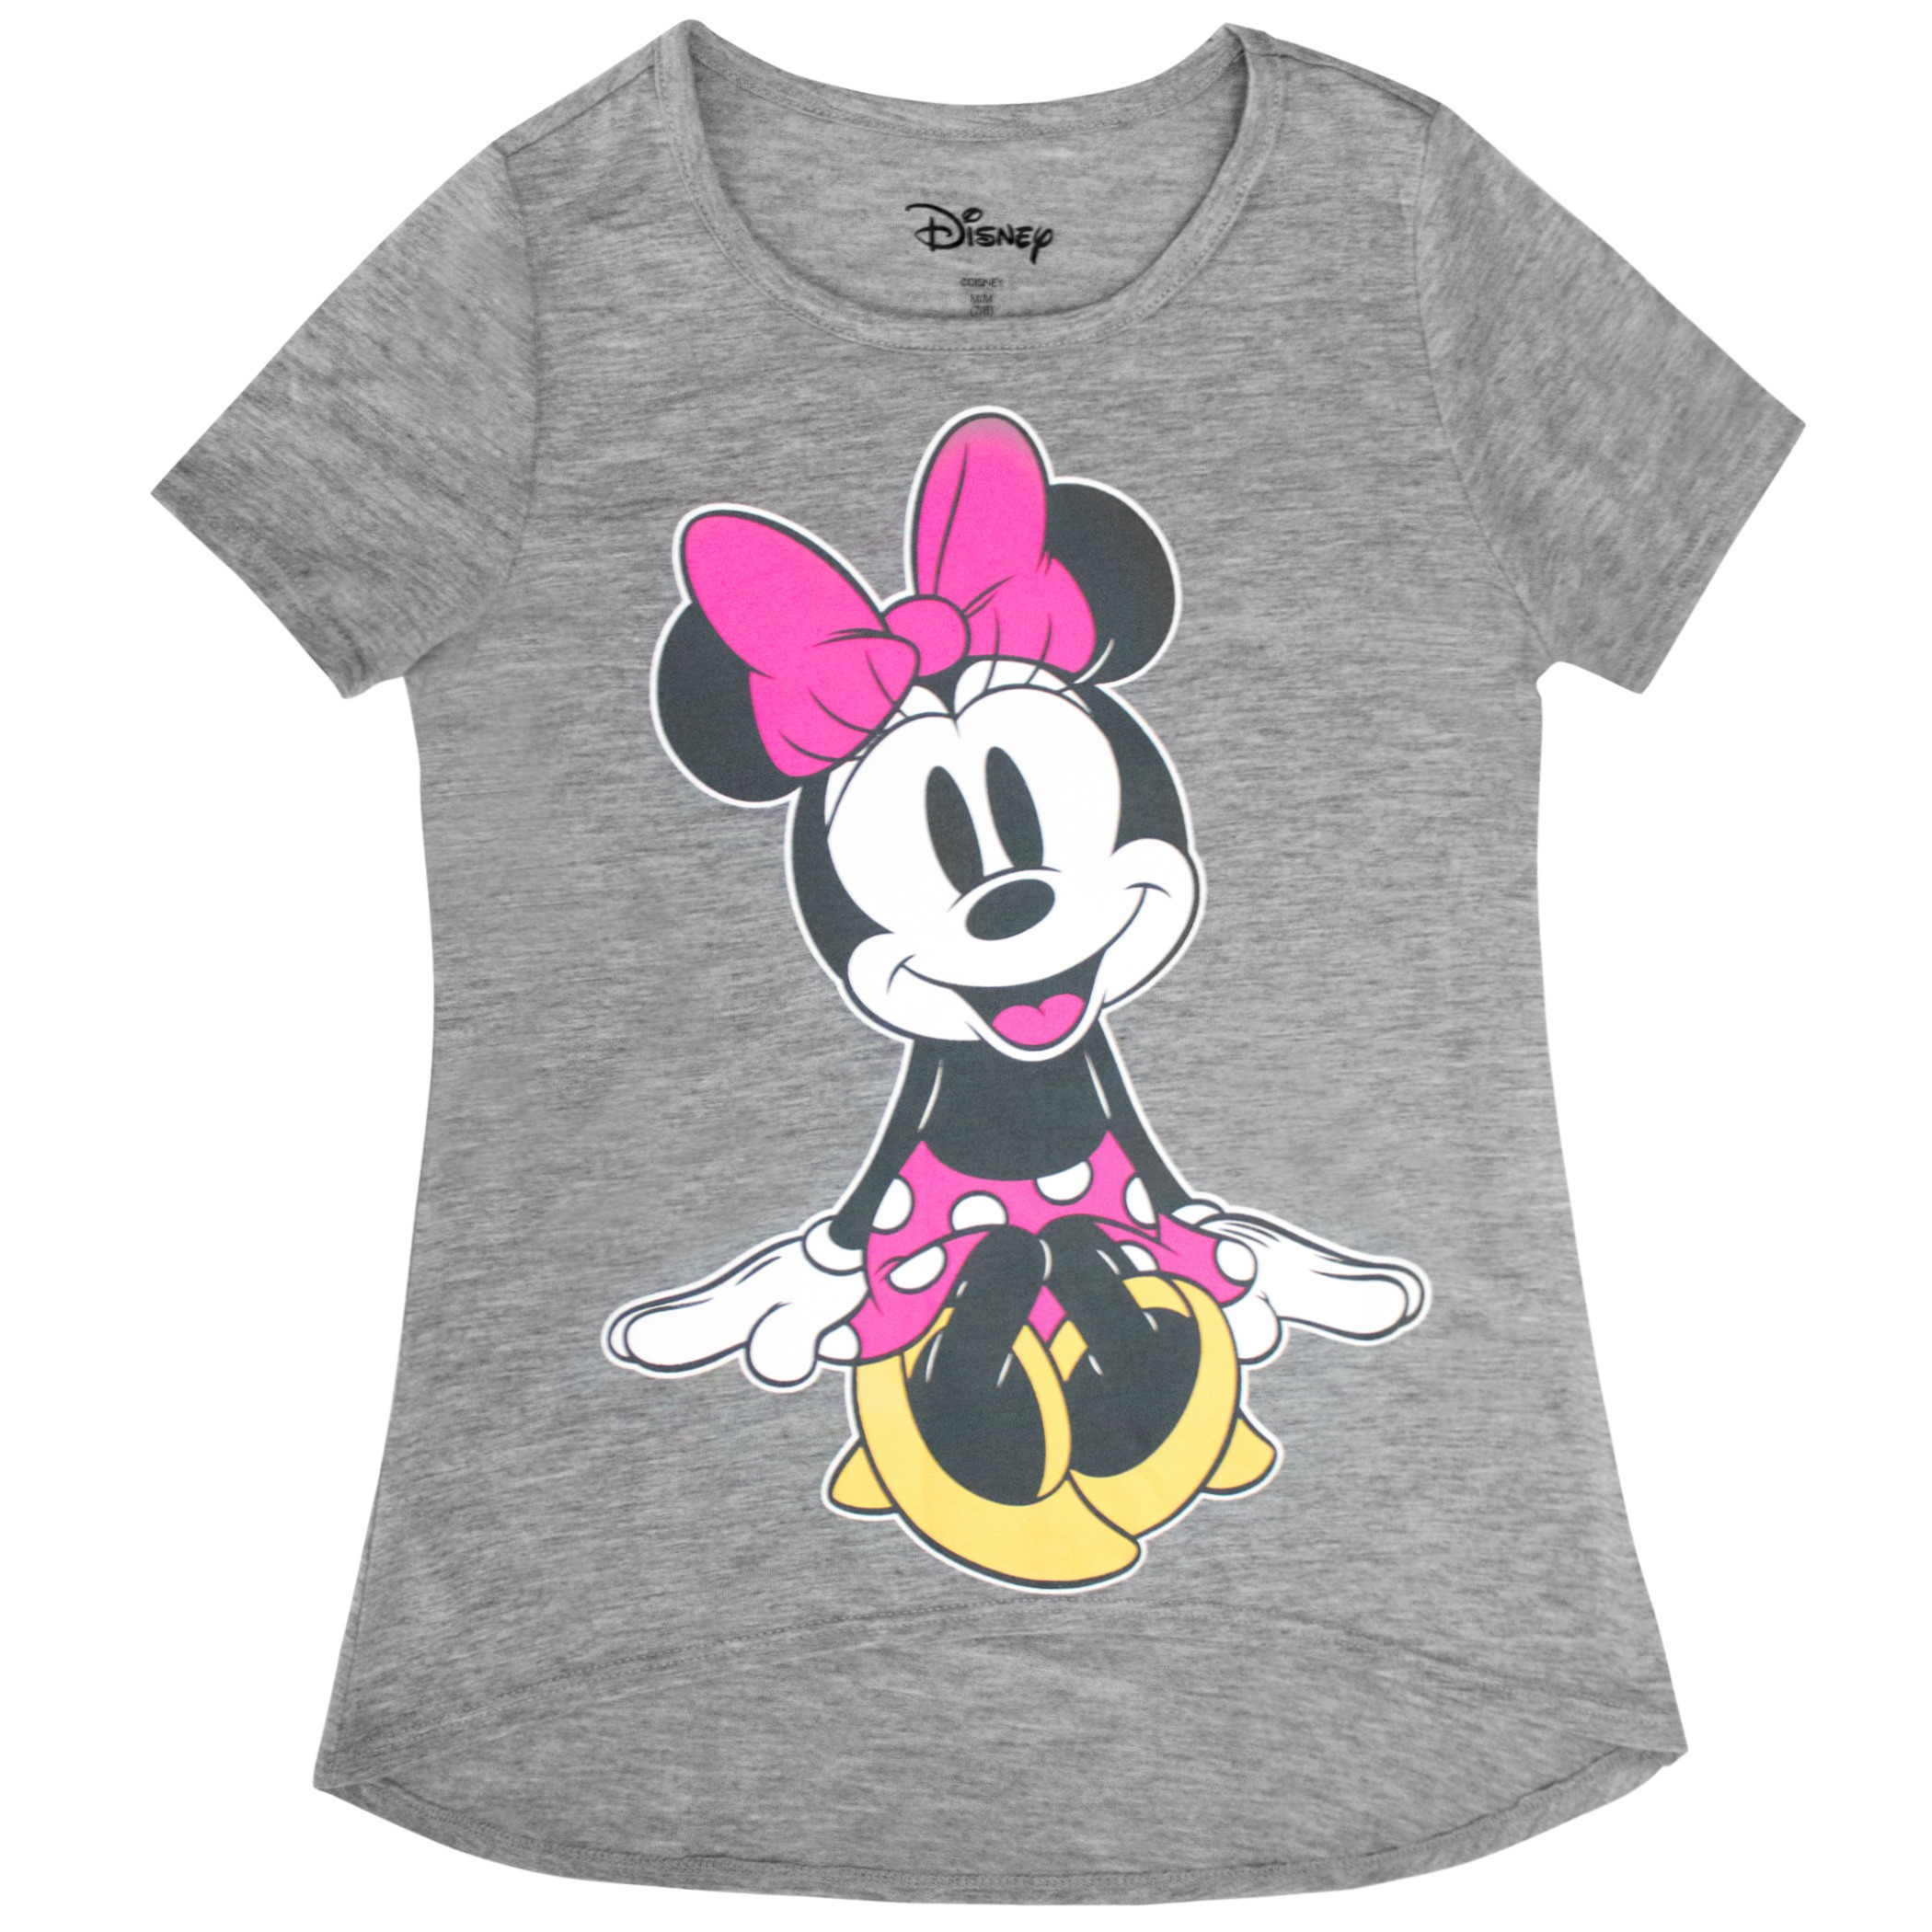 Minnie Mouse Cutie Youth Girl's Grey Tee Shirt